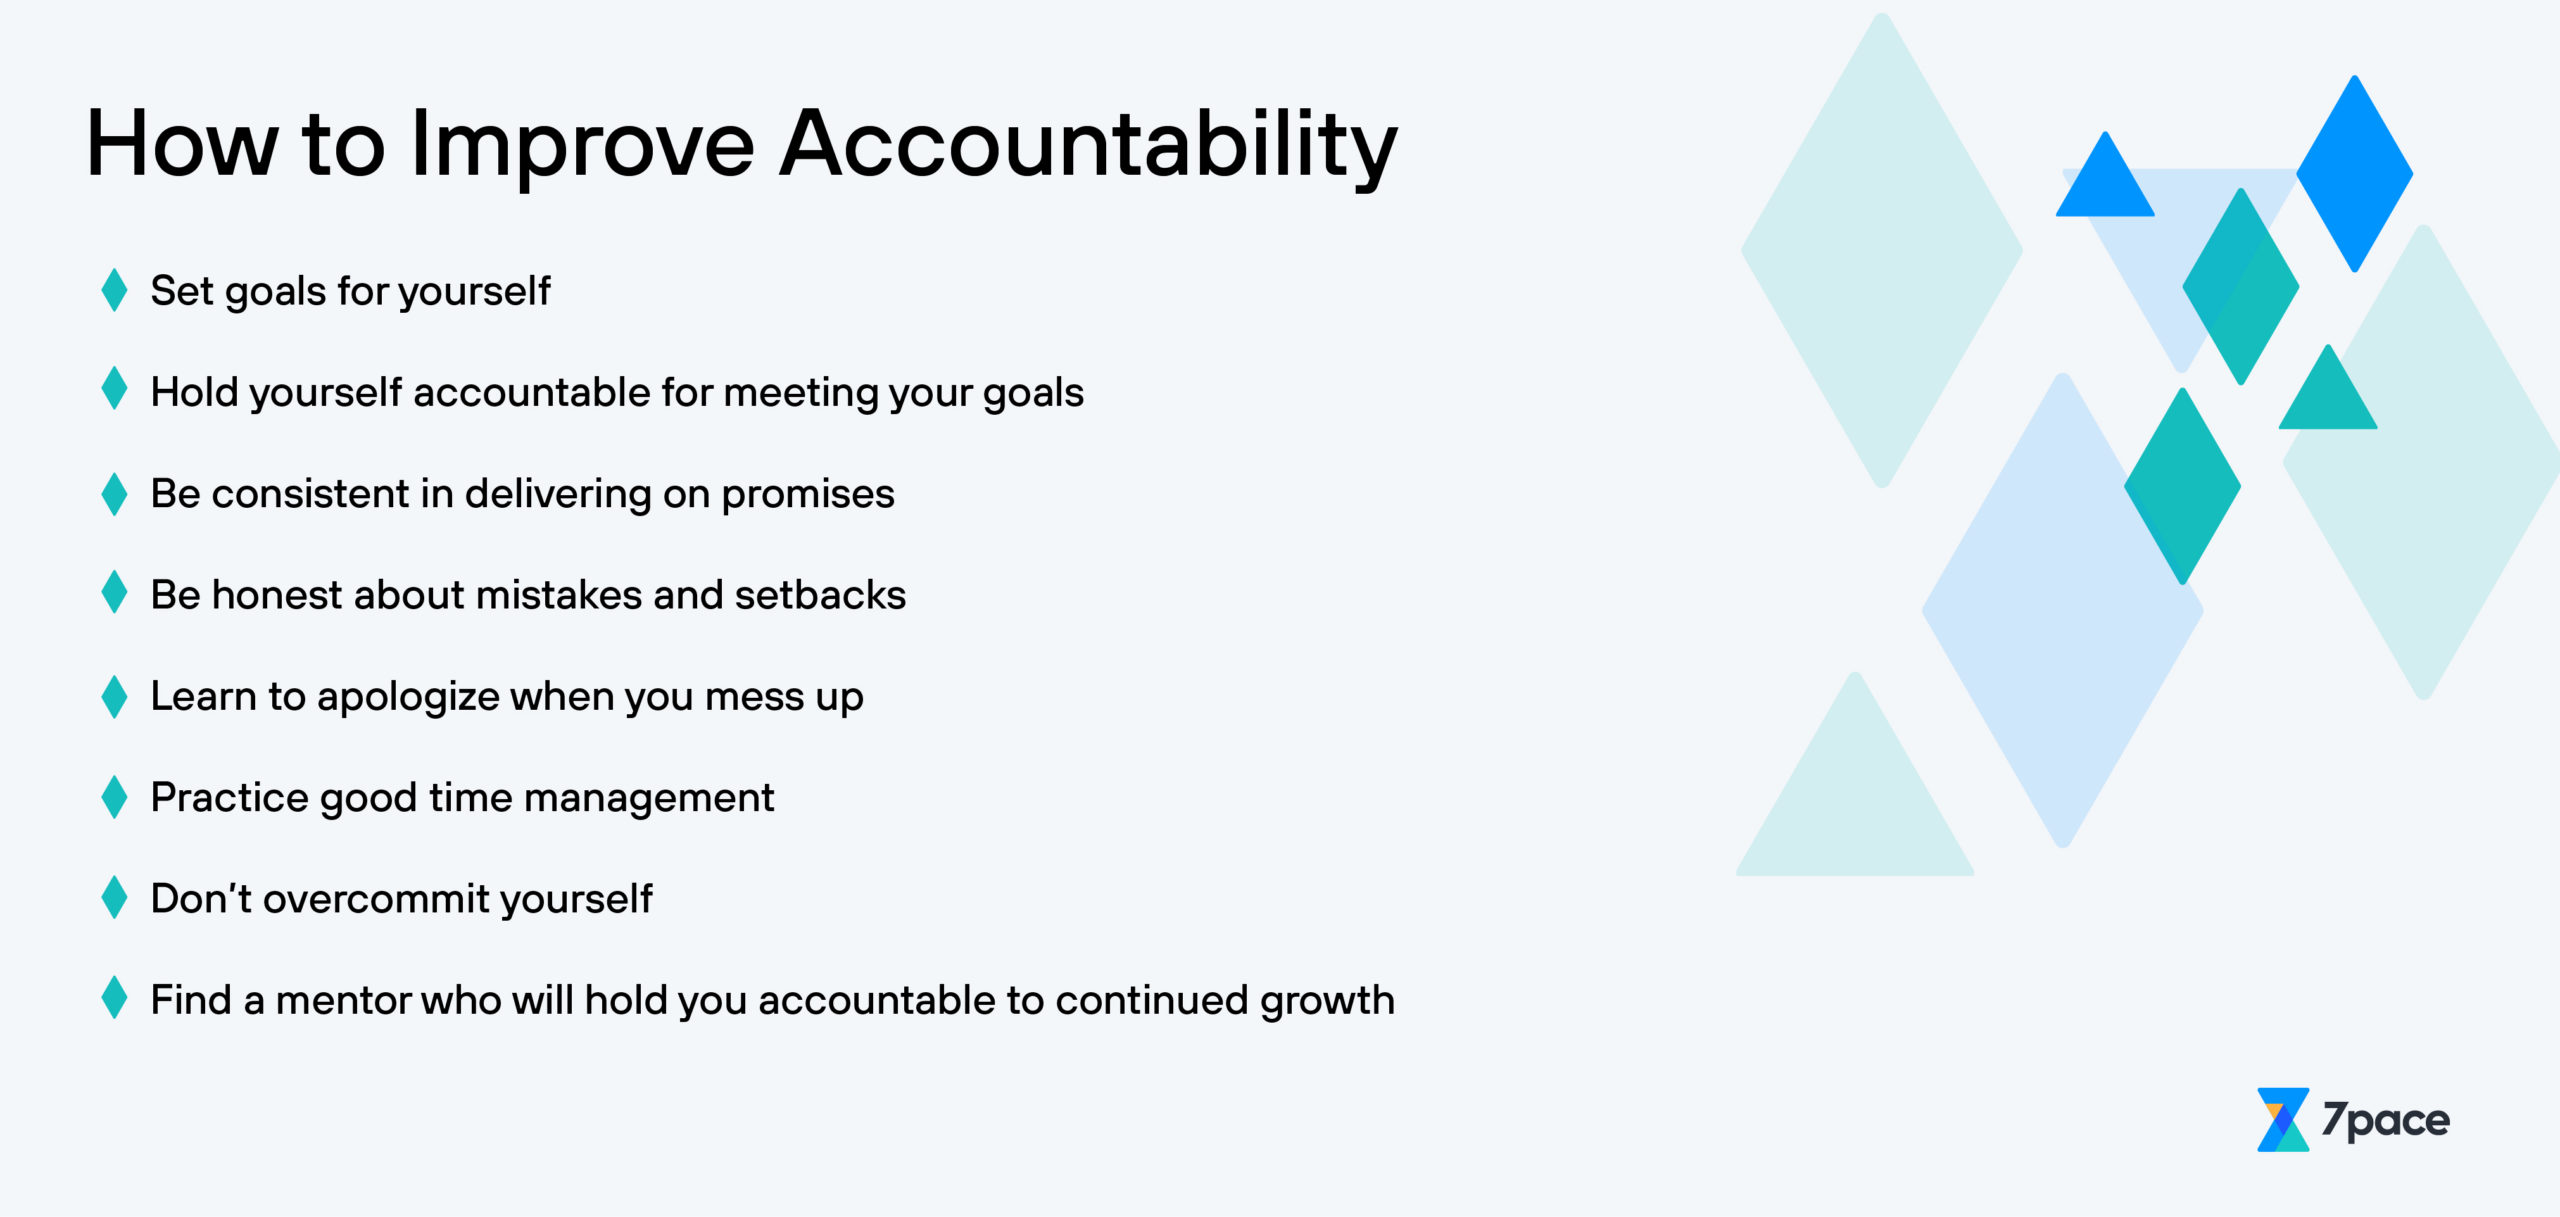 How to Learn and Improve Accountability